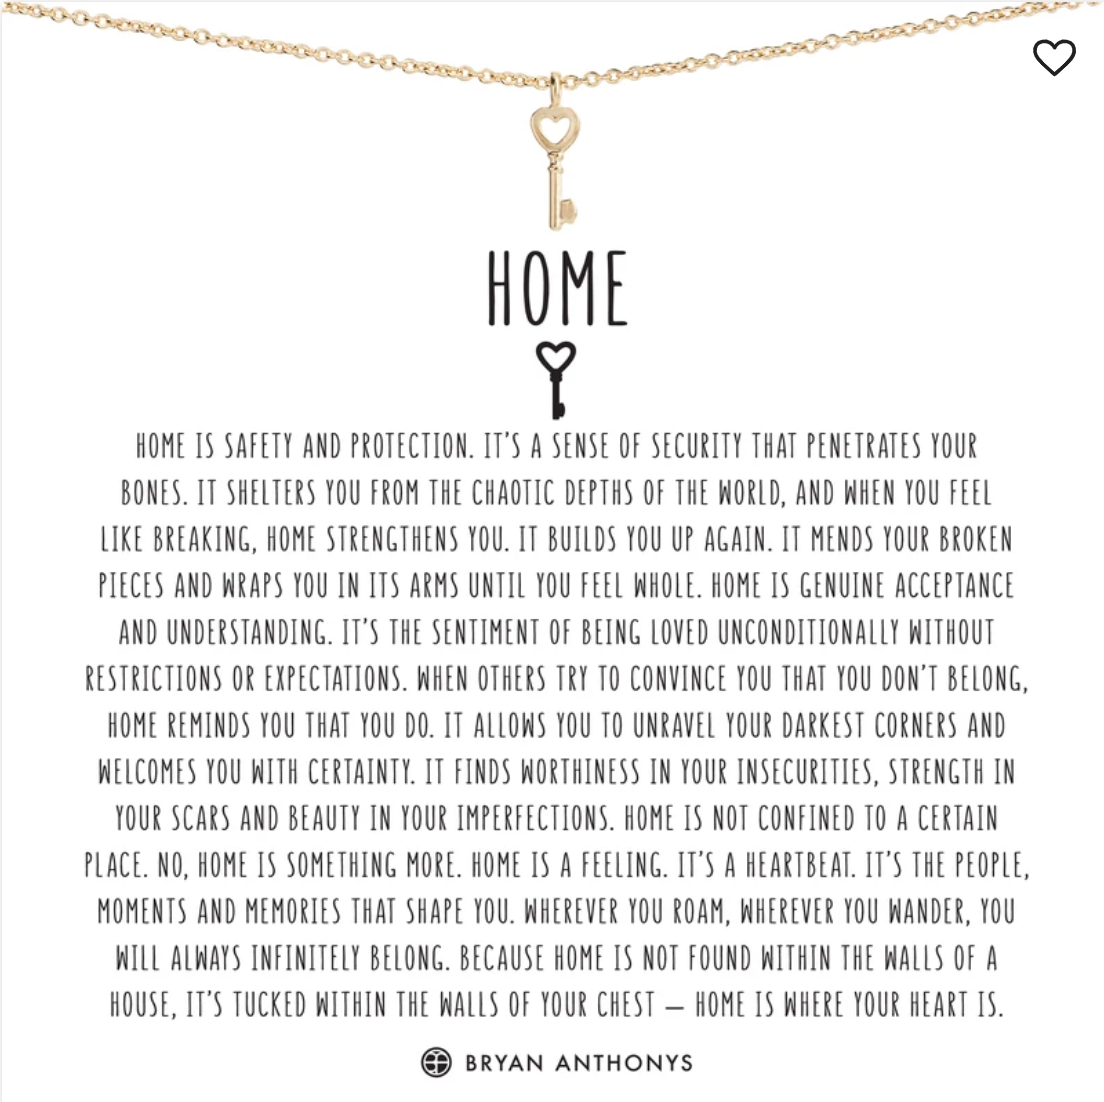 Bryan Anthony's Home Necklace